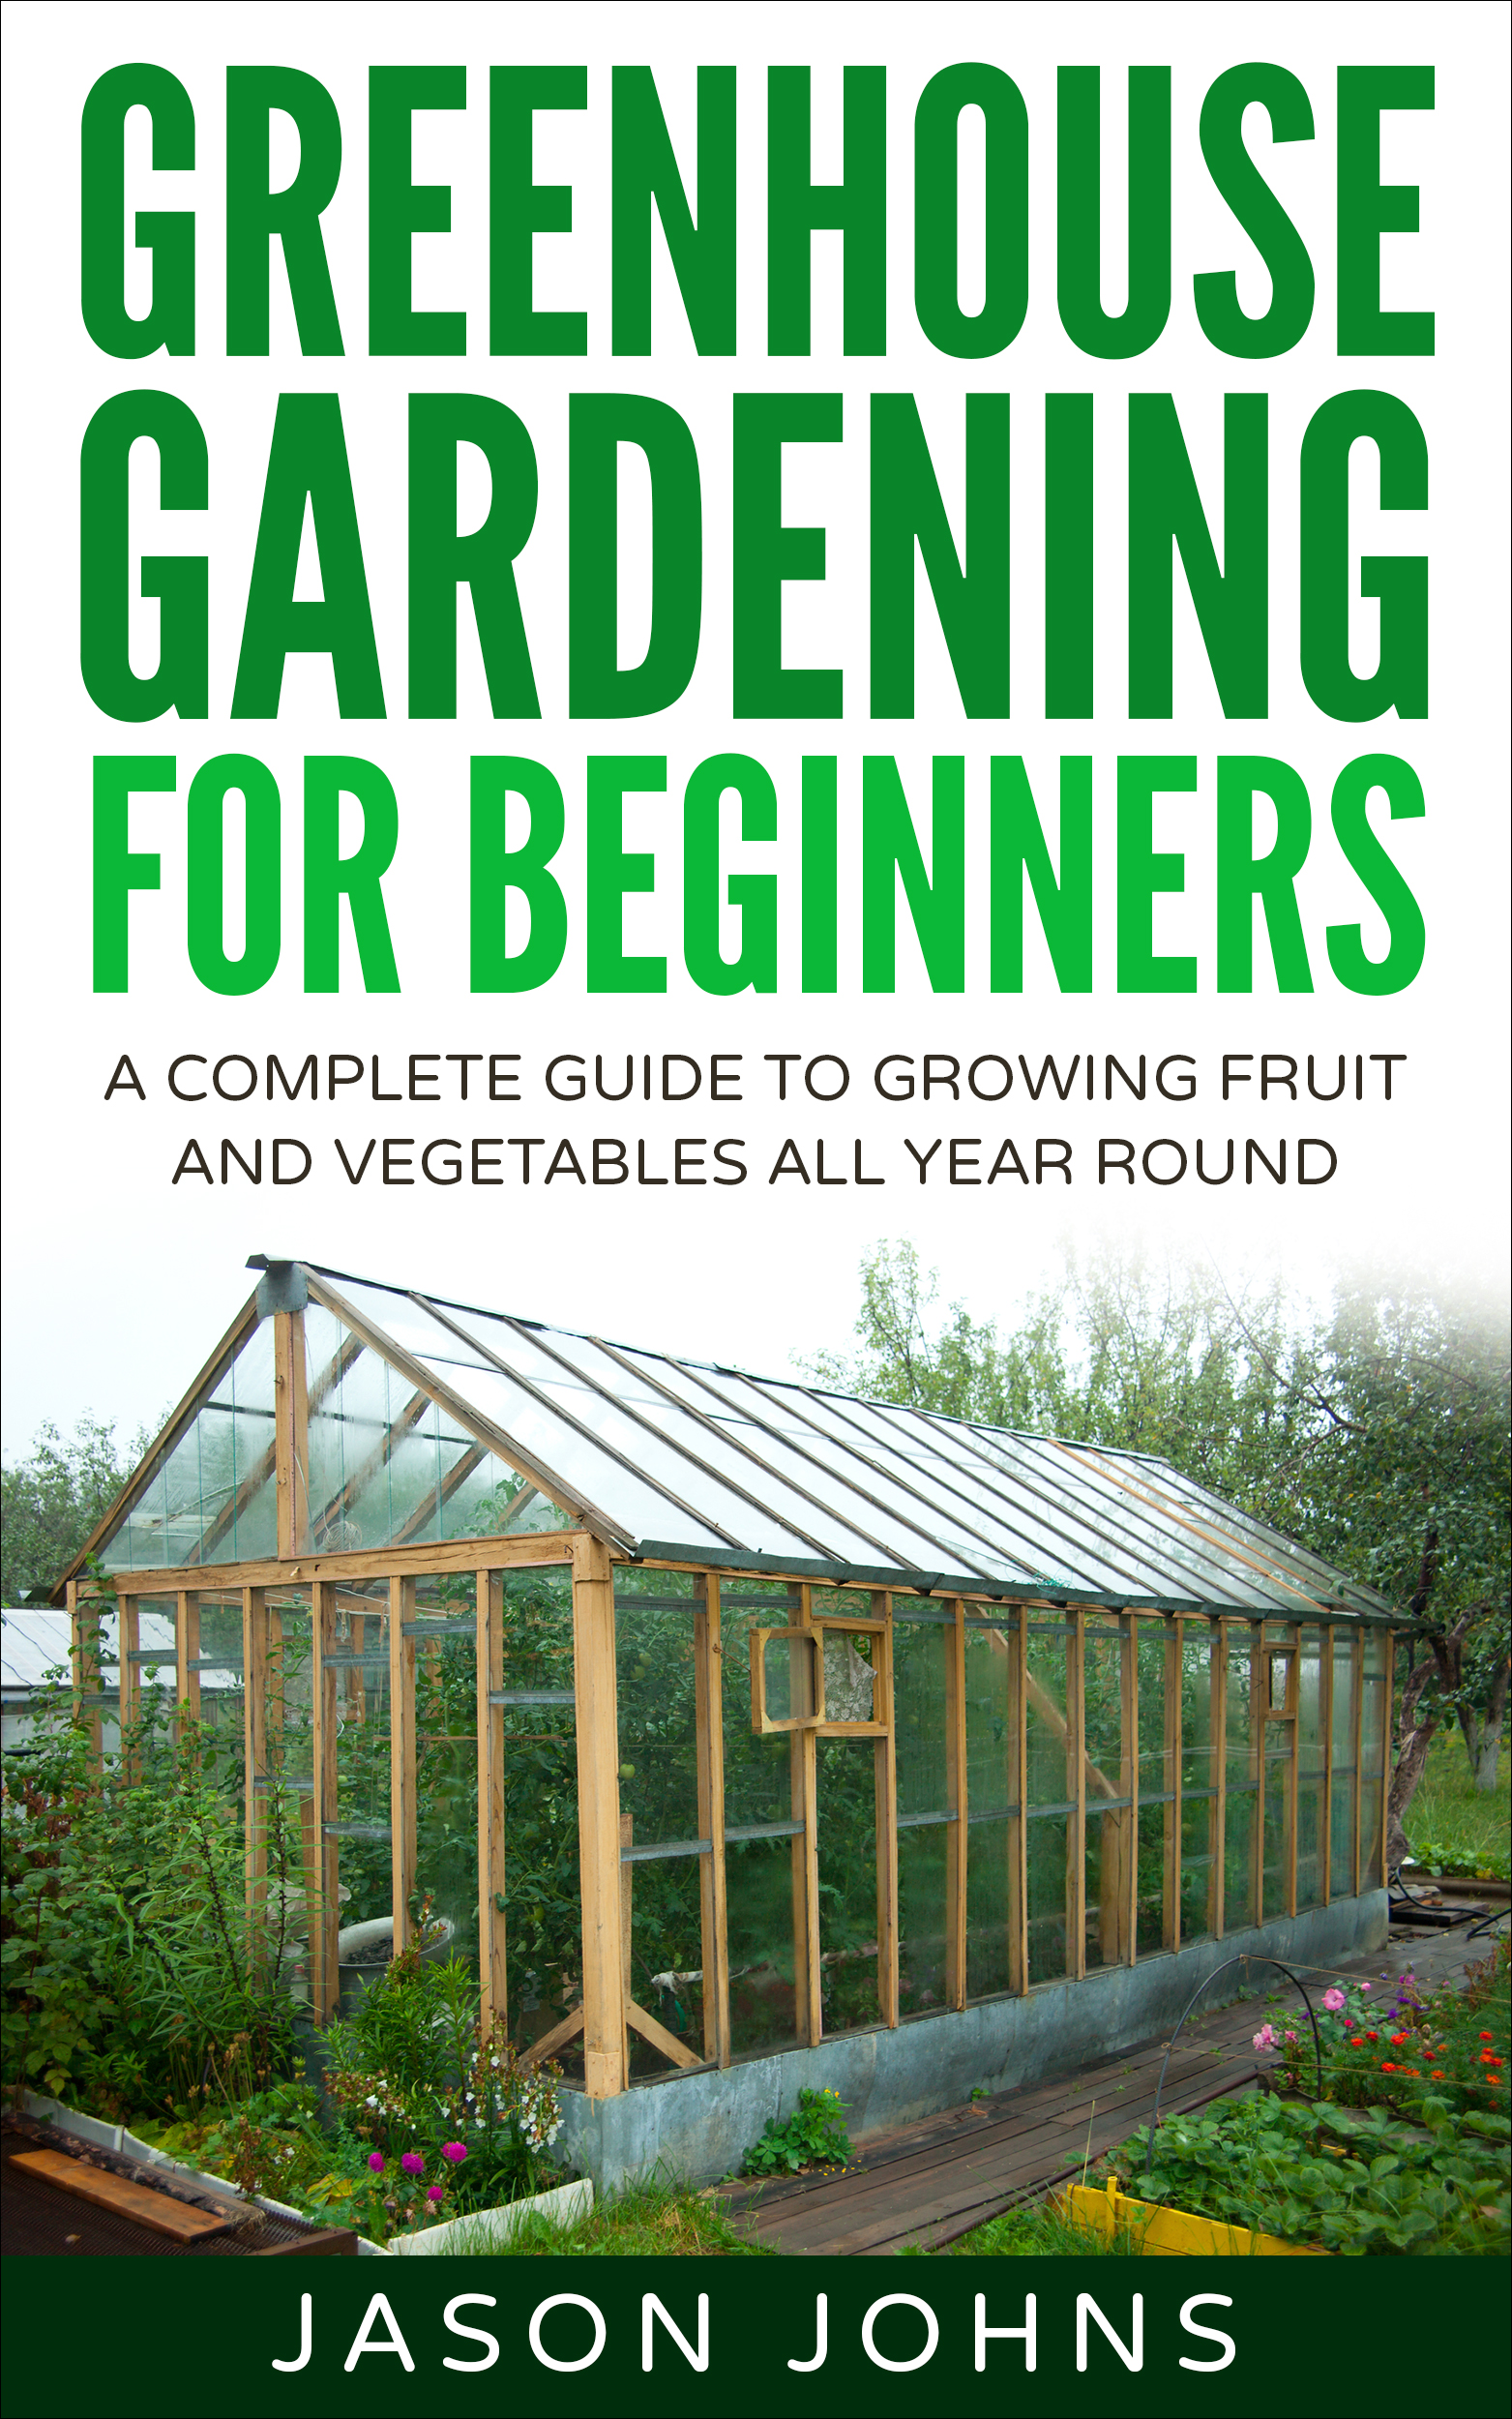 8 Small Gardens That Will Inspire You In Any Season: A Beginners Guide To Growing Fruit